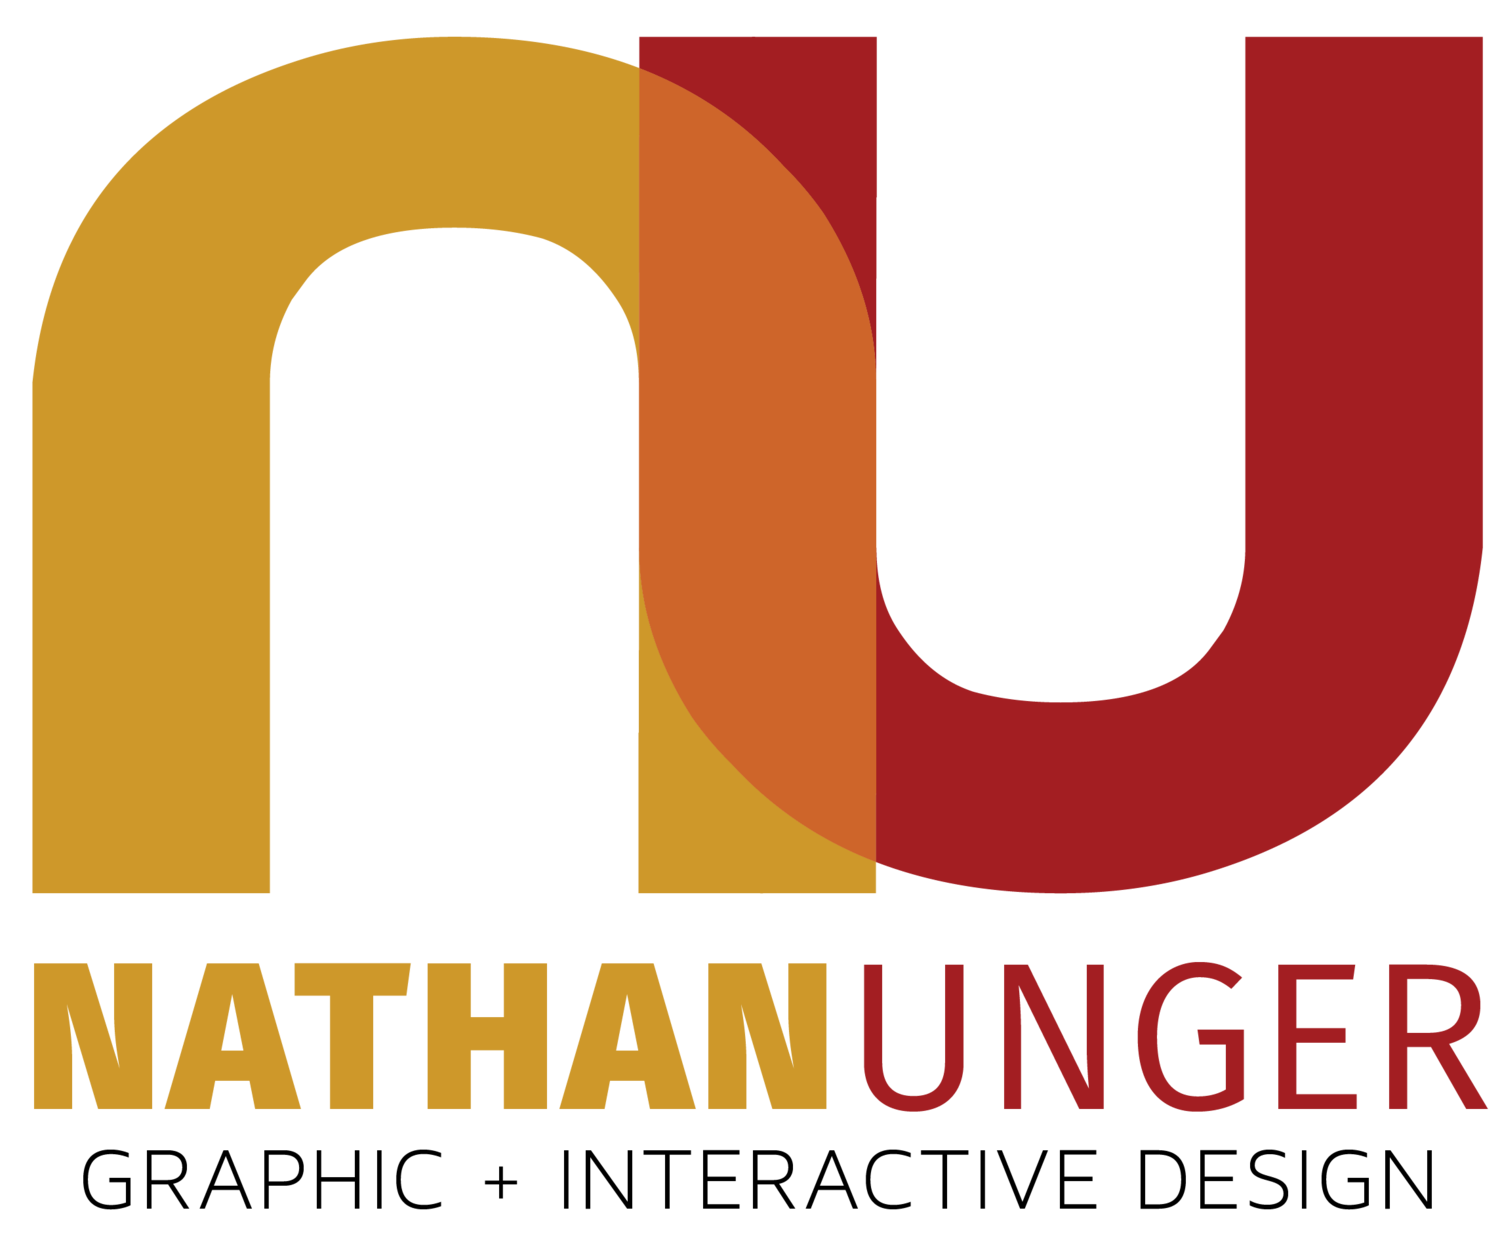 Nathan Unger